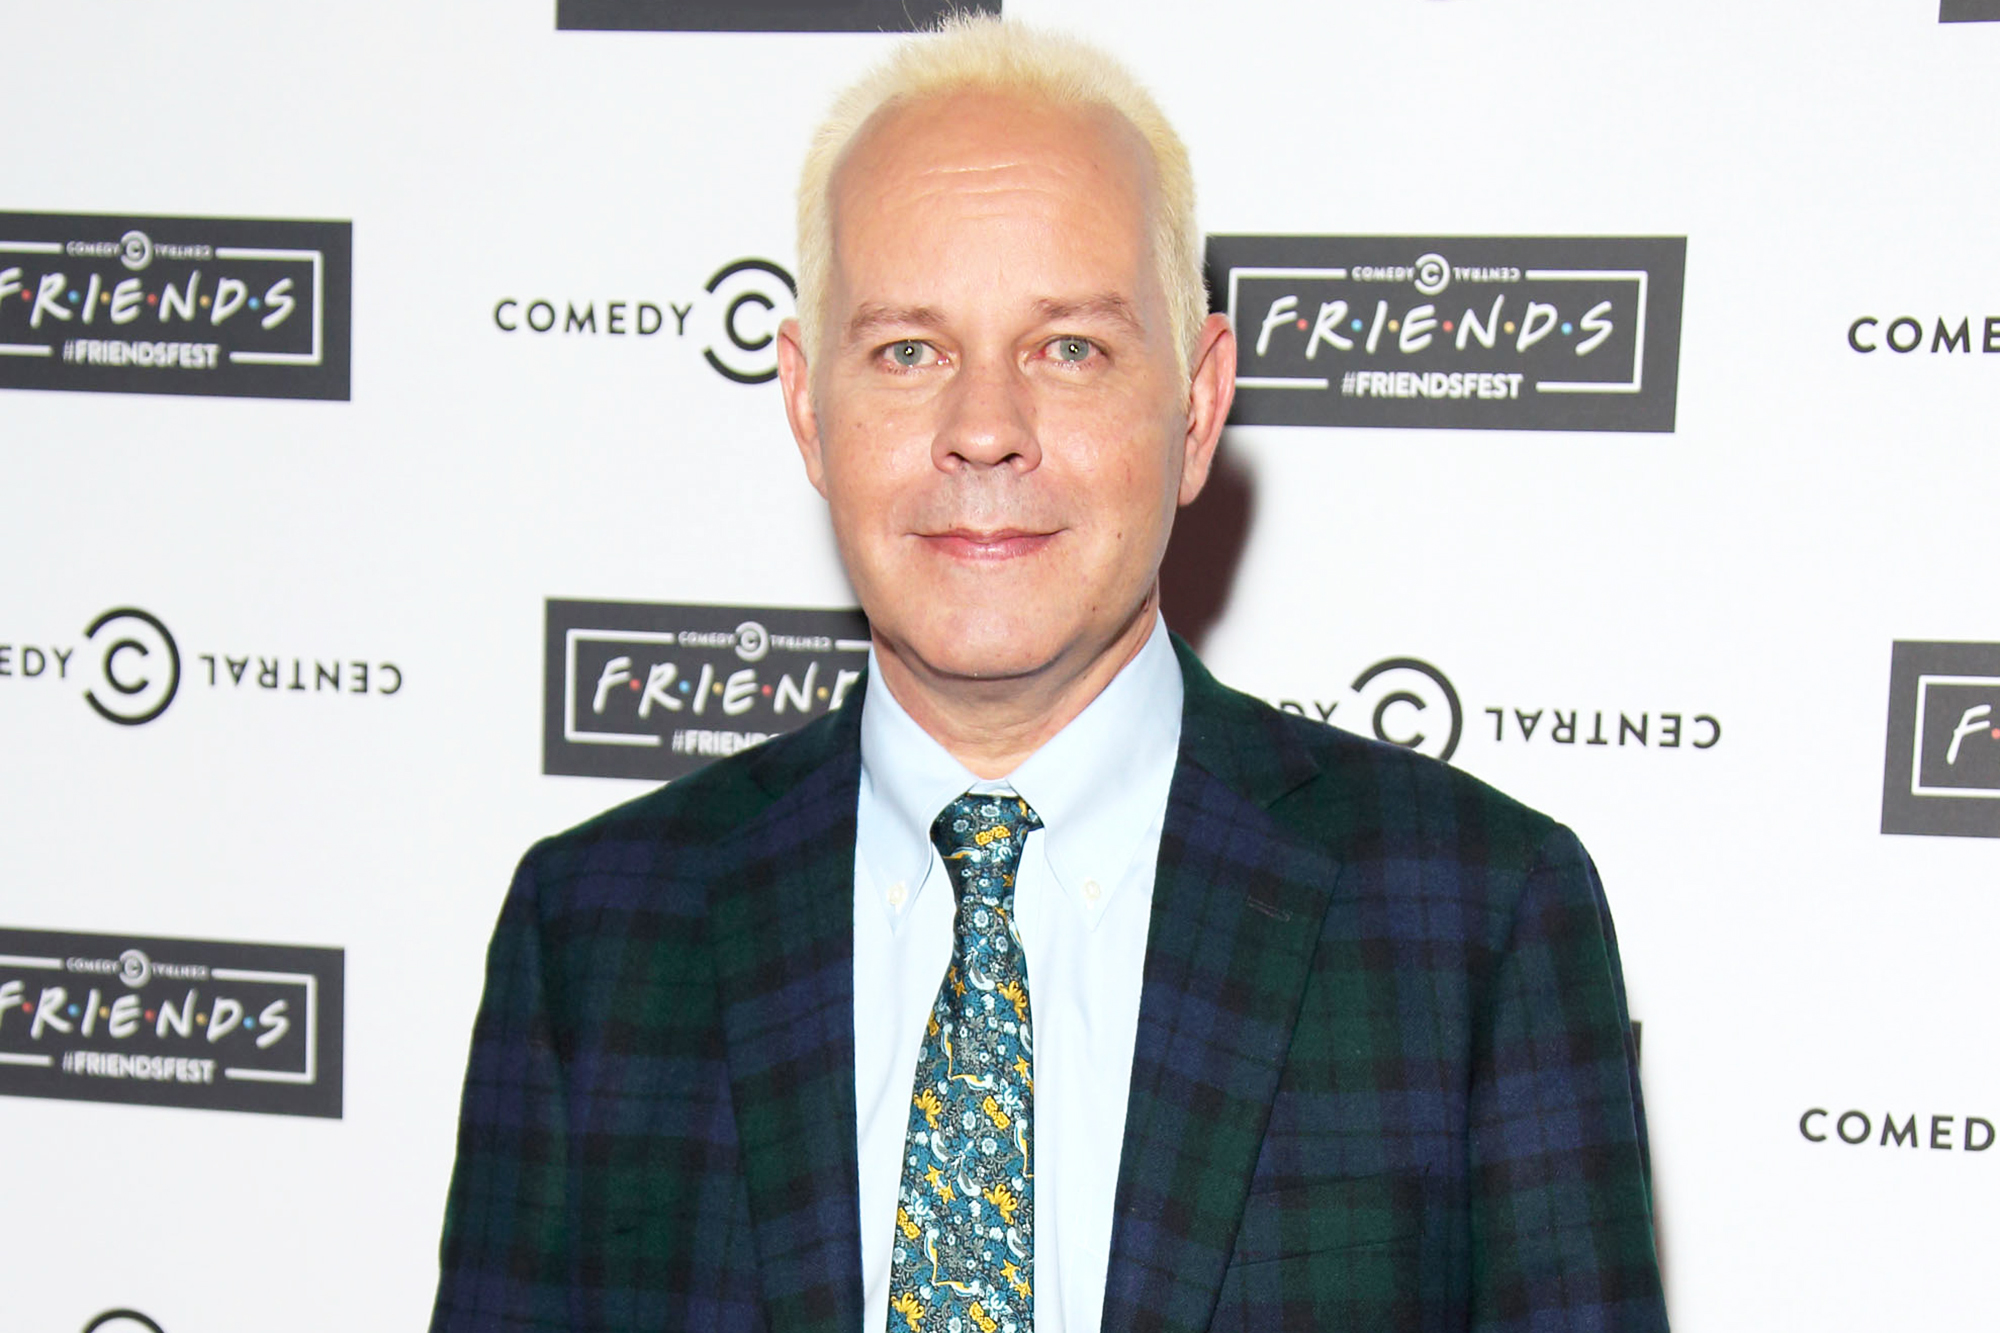 James Michael Tyler attends the launch of Friendsfest at The Boiler House,The Old Truman Brewery, on September 15, 2015 in London, England.